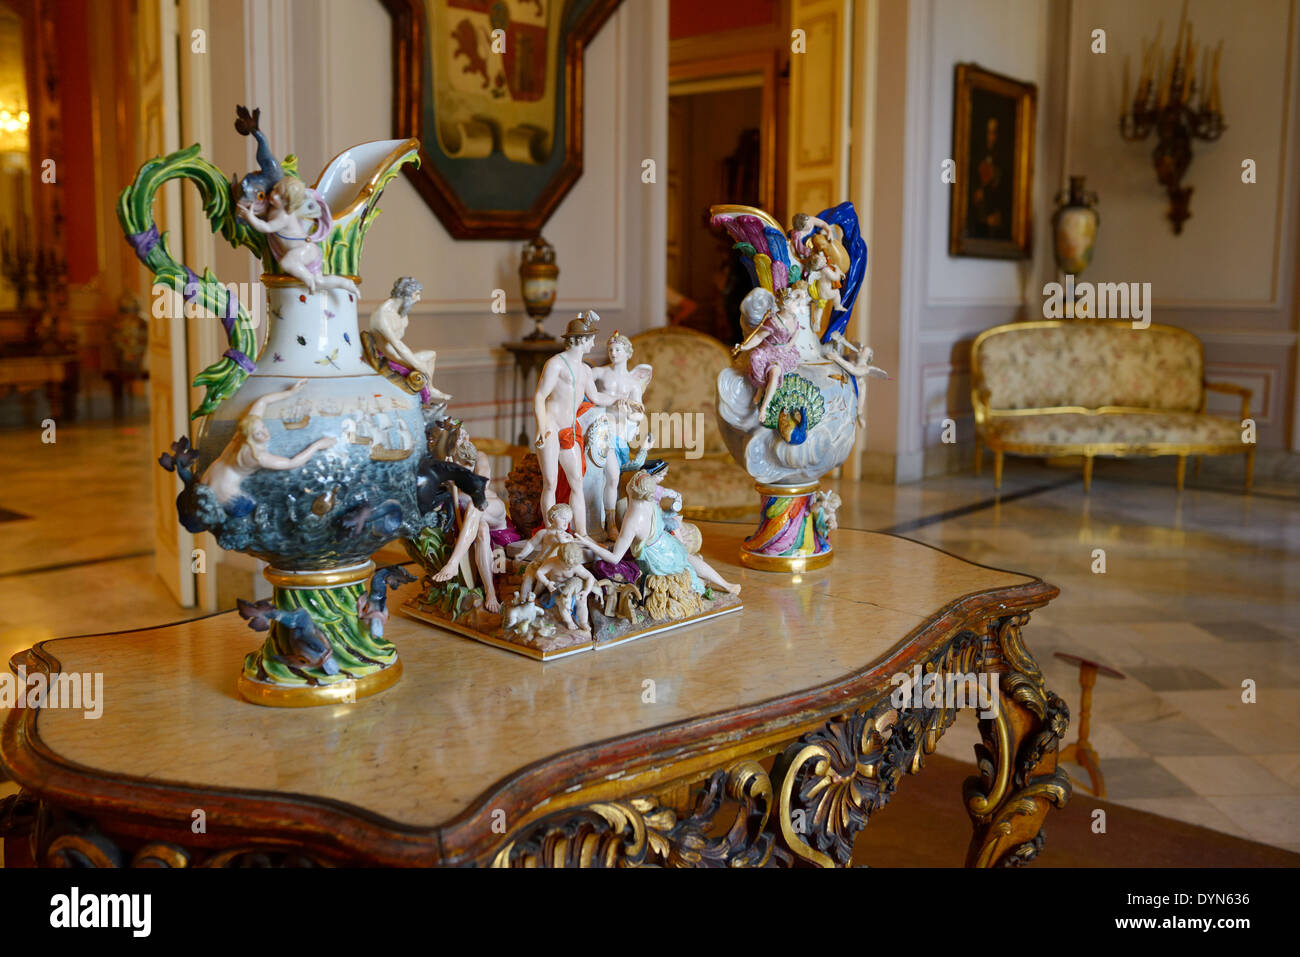 Fine Porcelain figurines with opulent Colonial furnishing at the Governors Palace museum Old Havana Cuba - Stock Image